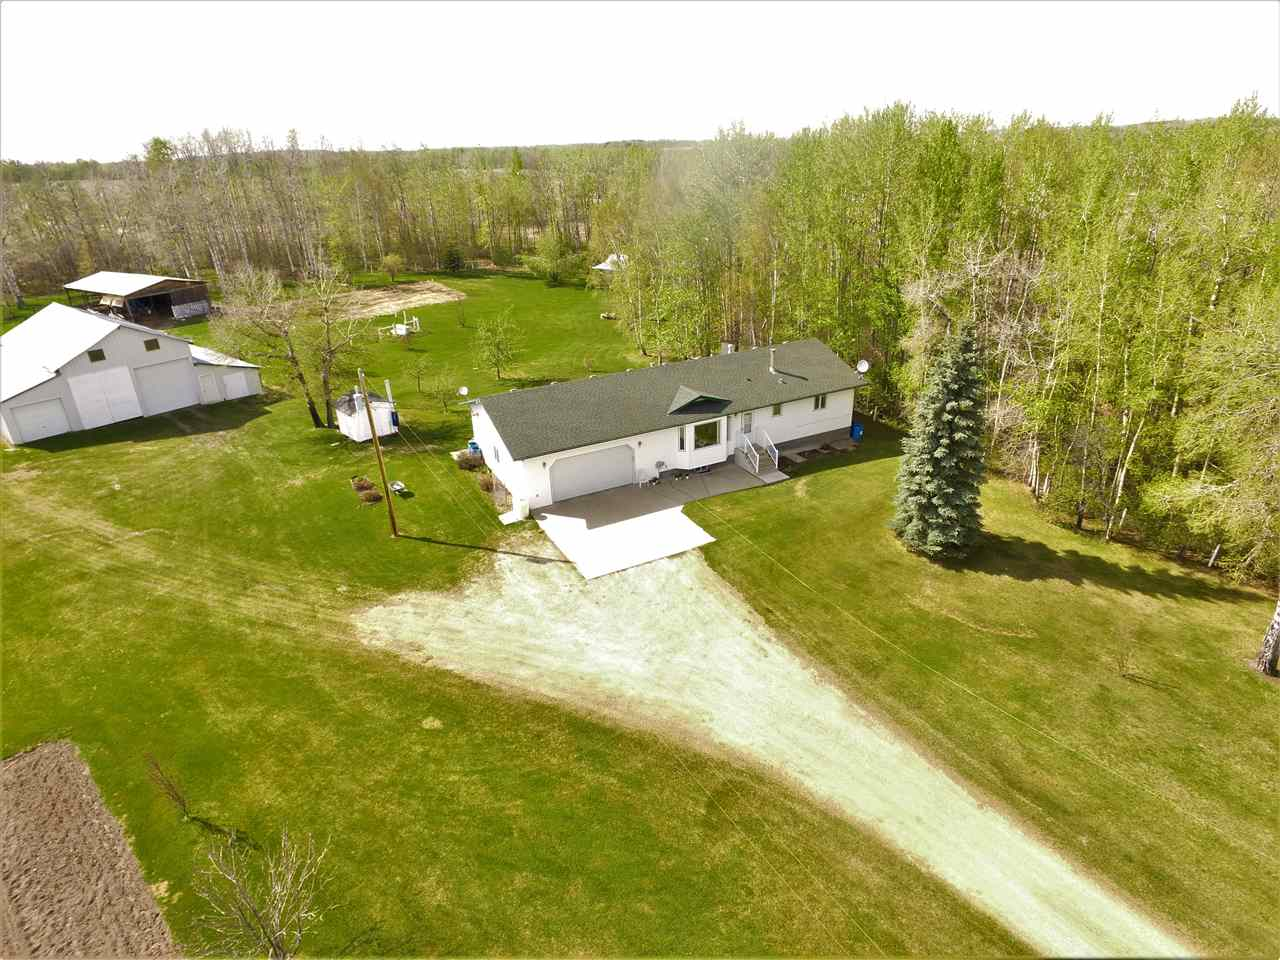 Main Photo: 464016 Rge Rd 20: Rural Wetaskiwin County House for sale : MLS®# E4119115